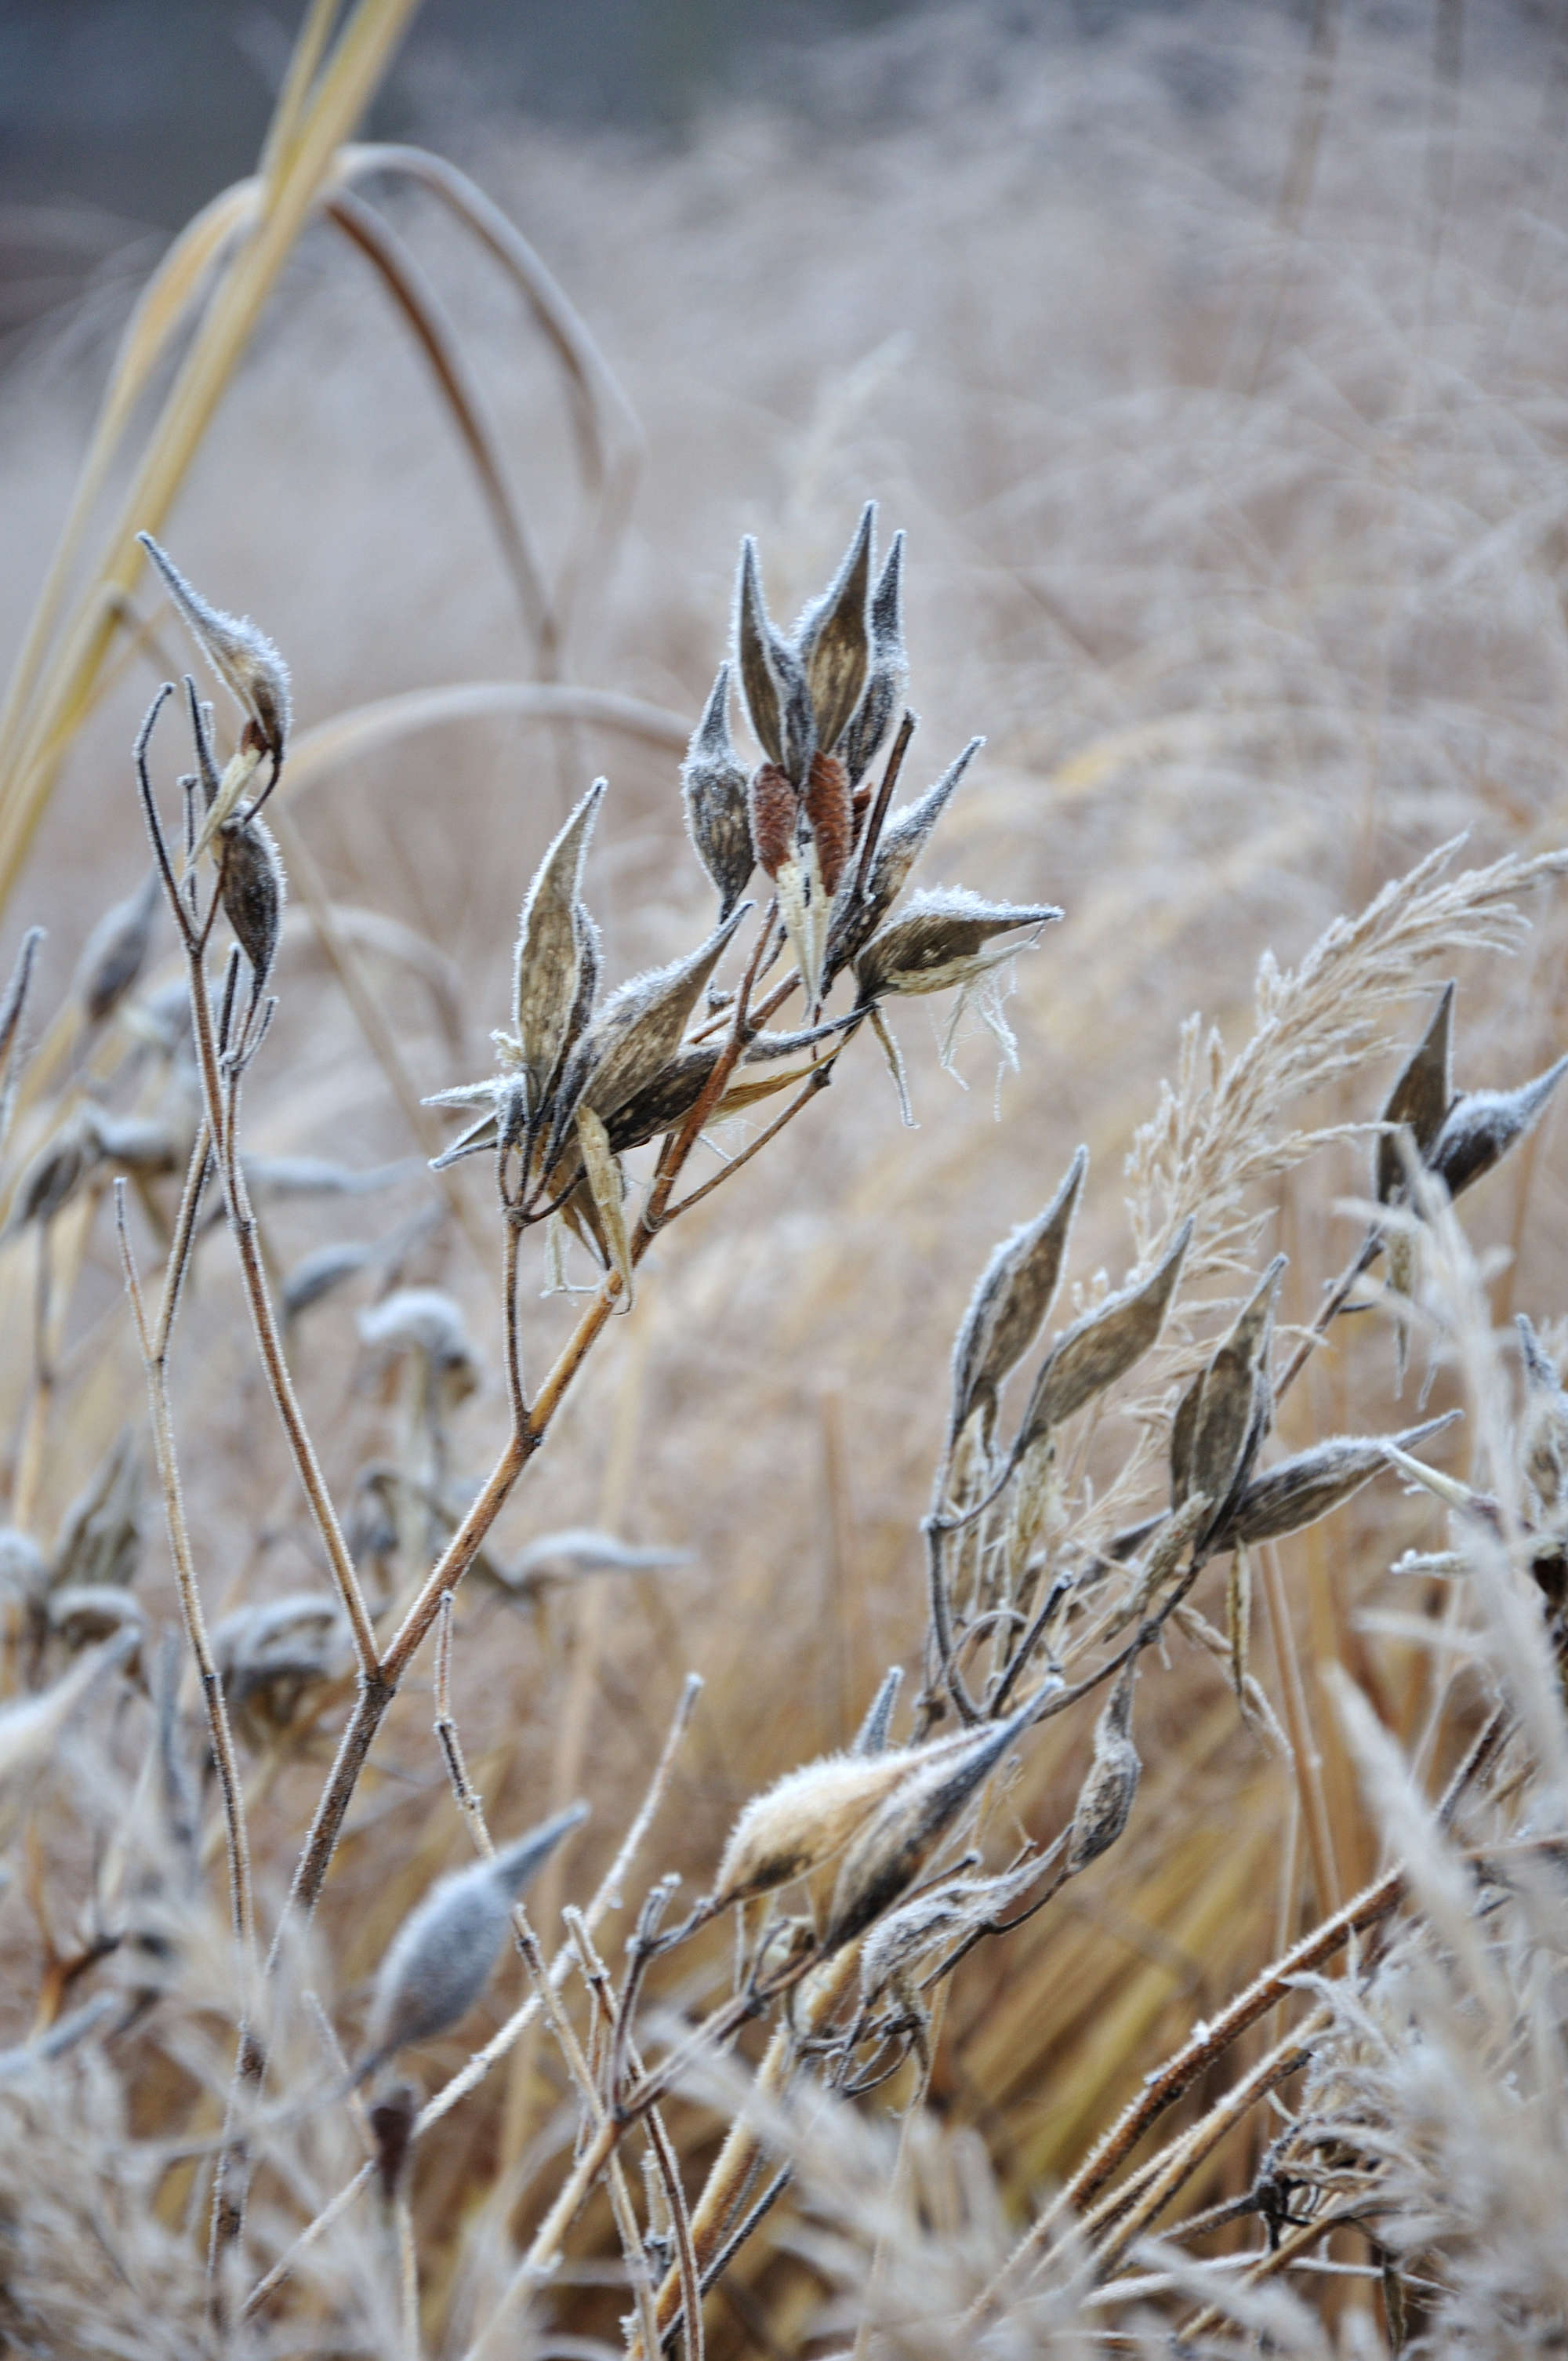 Playful Asclepias 'Ice Ballet' (milkweed) mimics fox ears or fish tails.